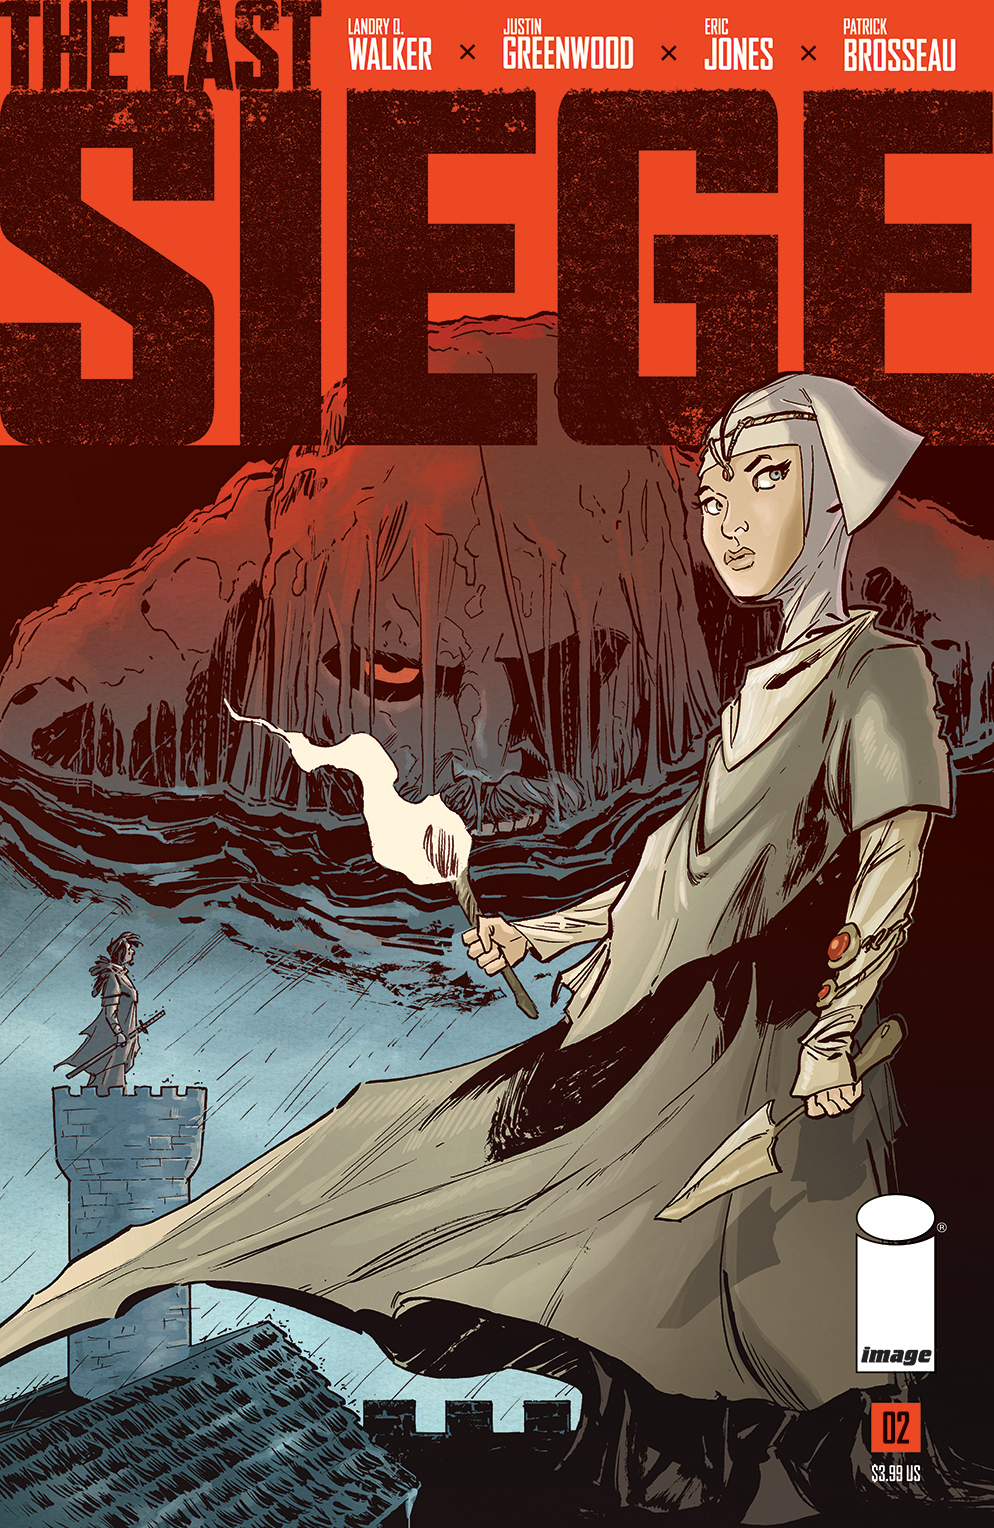 THE LAST SIEGE #2 Main Cover by Justin Greenwood and Brad Simpson